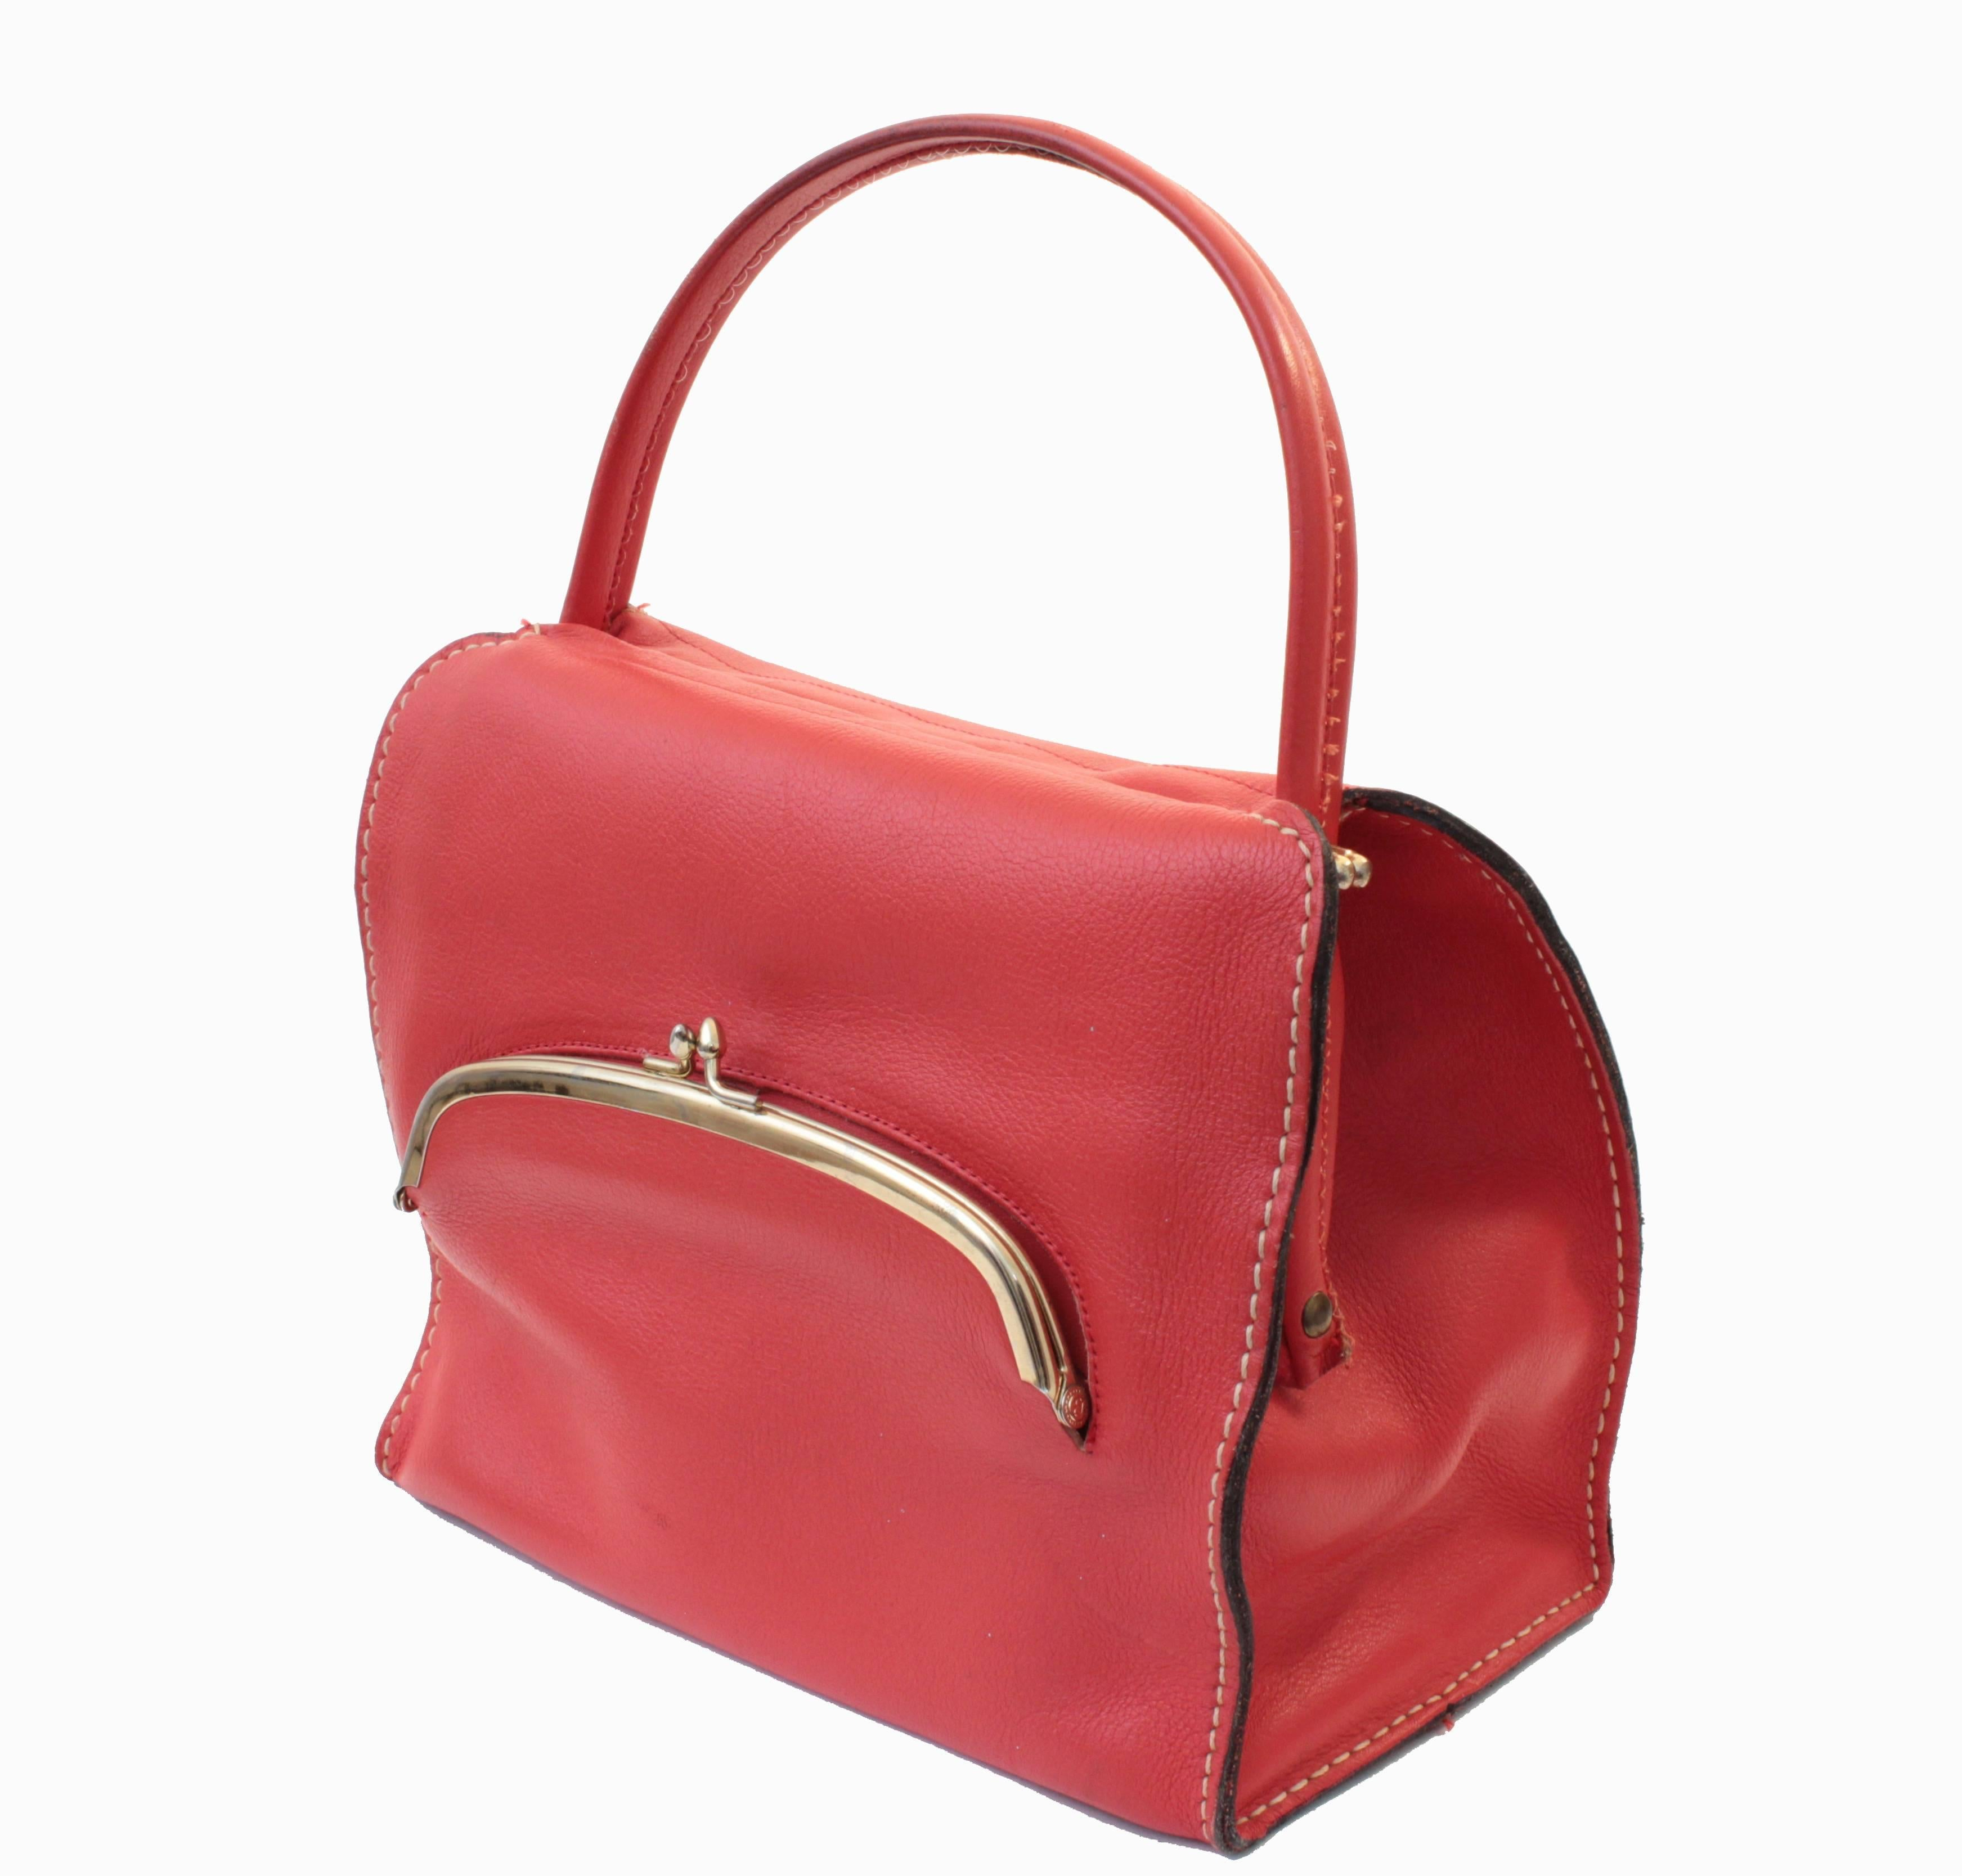 f96e0d88547 Bonnie Cashin Red Leather Tote Bag with Kiss Lock Purse NYC 1960s Rare For  Sale at 1stdibs